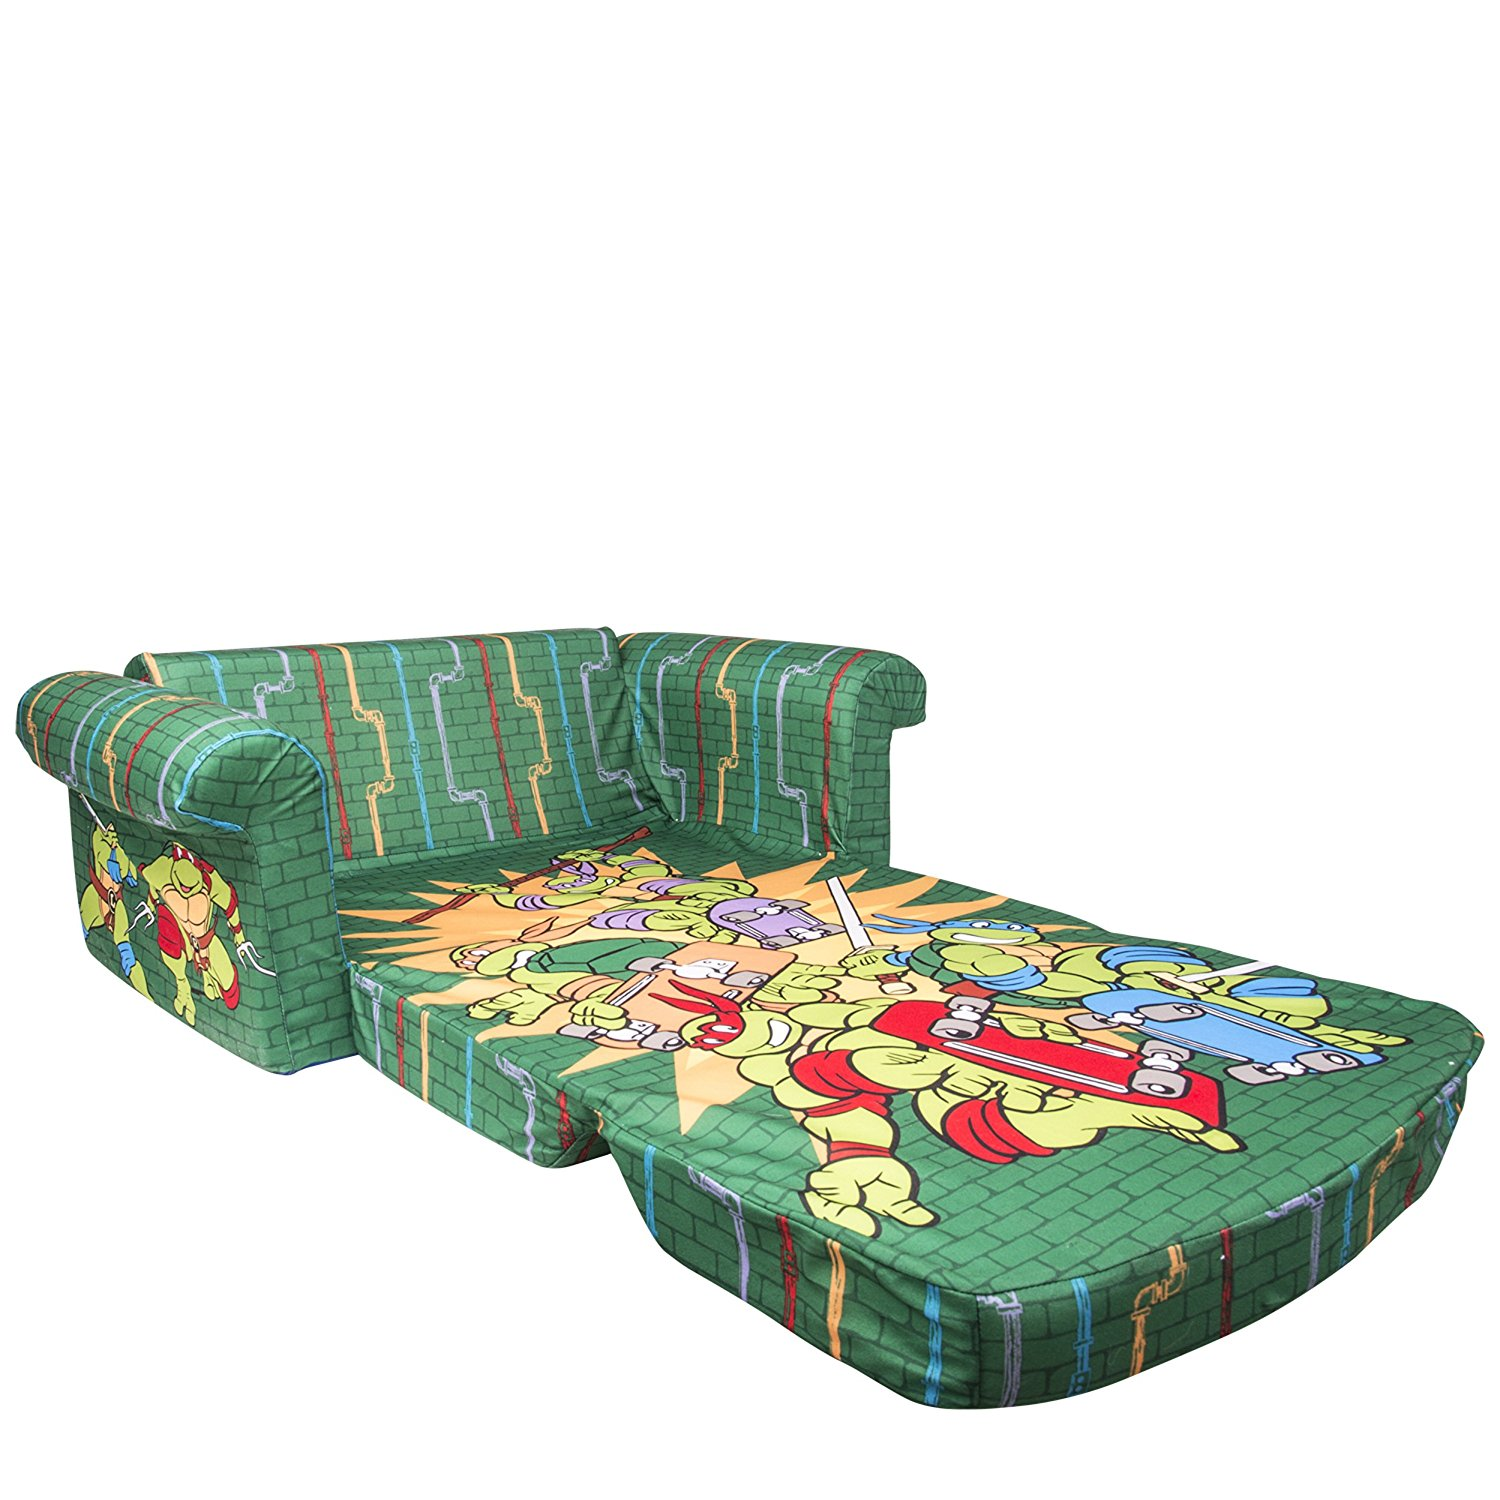 ninja turtles chair dining bench and chairs set marshmallow furniture childrens 2 in 1 flip open foam